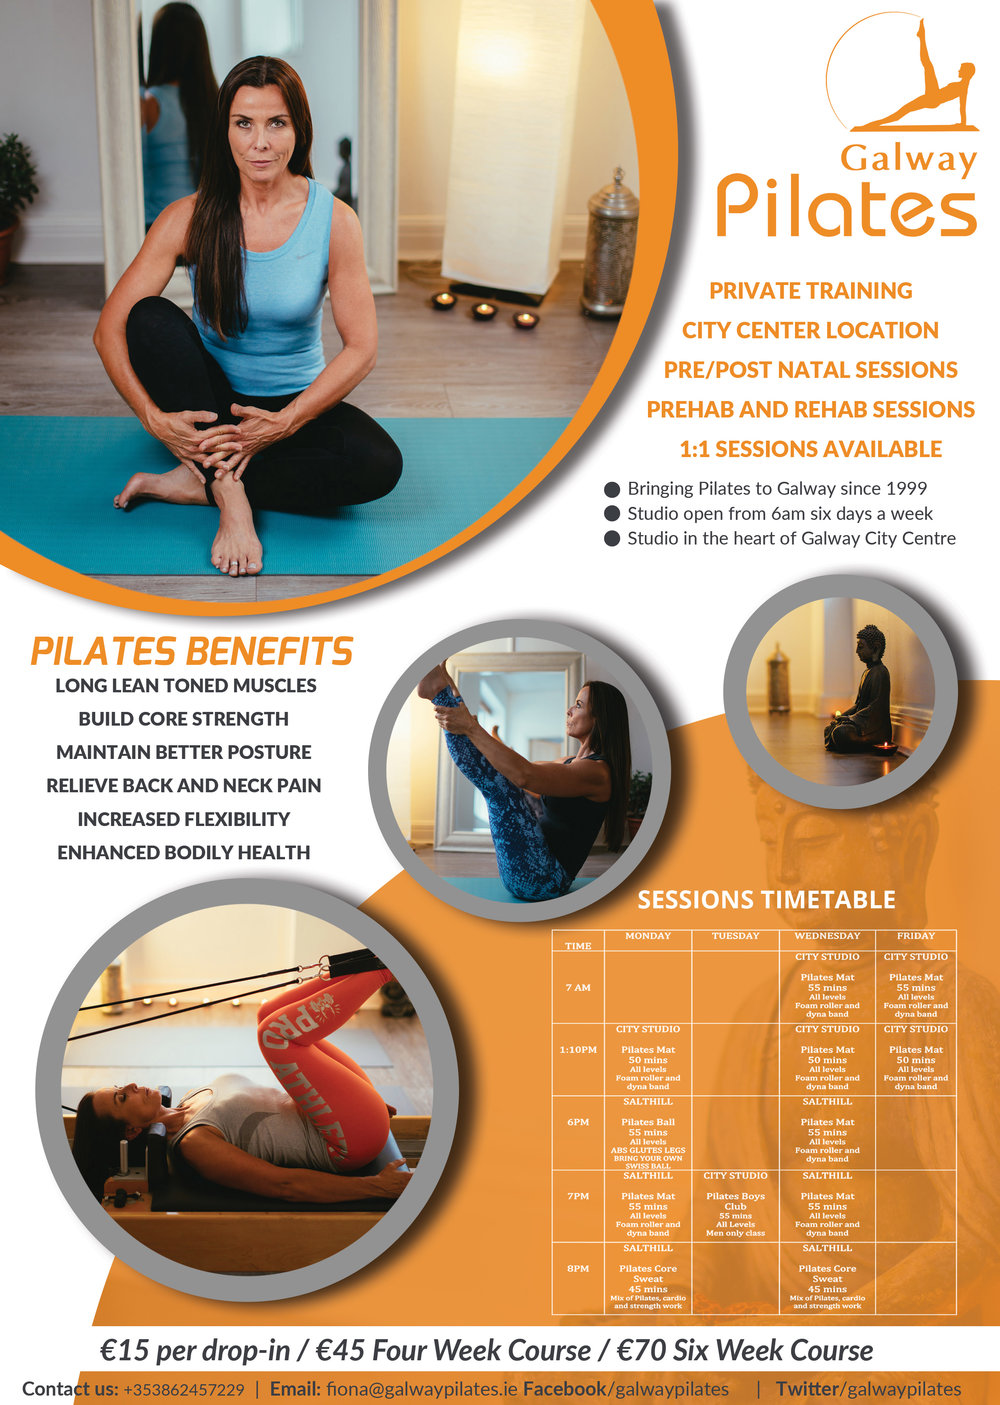 Promotional Leaflet for Pilates centre. Photography and graphic design part of a complete commission